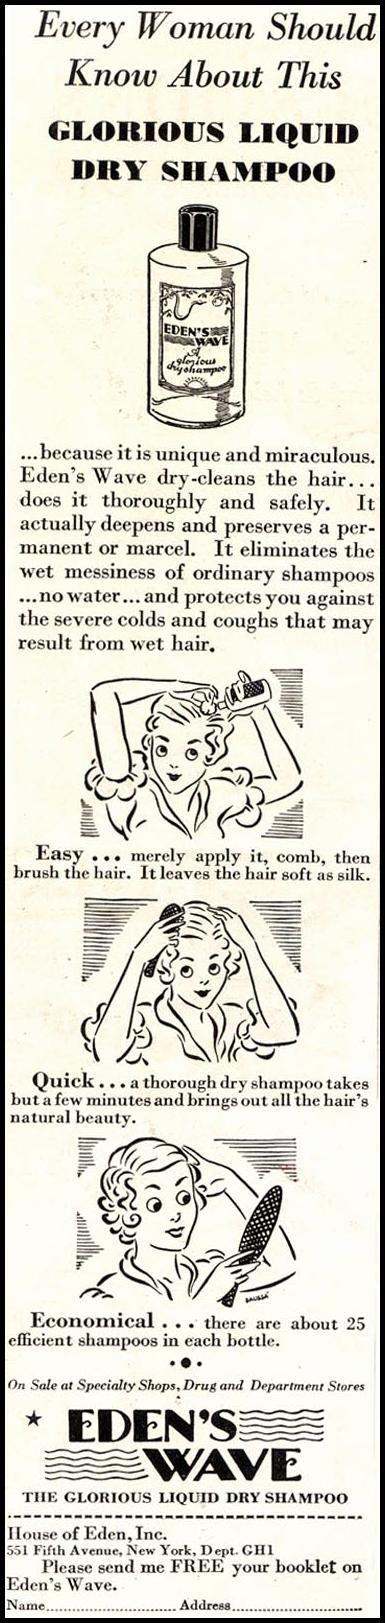 EDEN'S WAVE DRY SHAMPOO GOOD HOUSEKEEPING 11/01/1933 p. 199